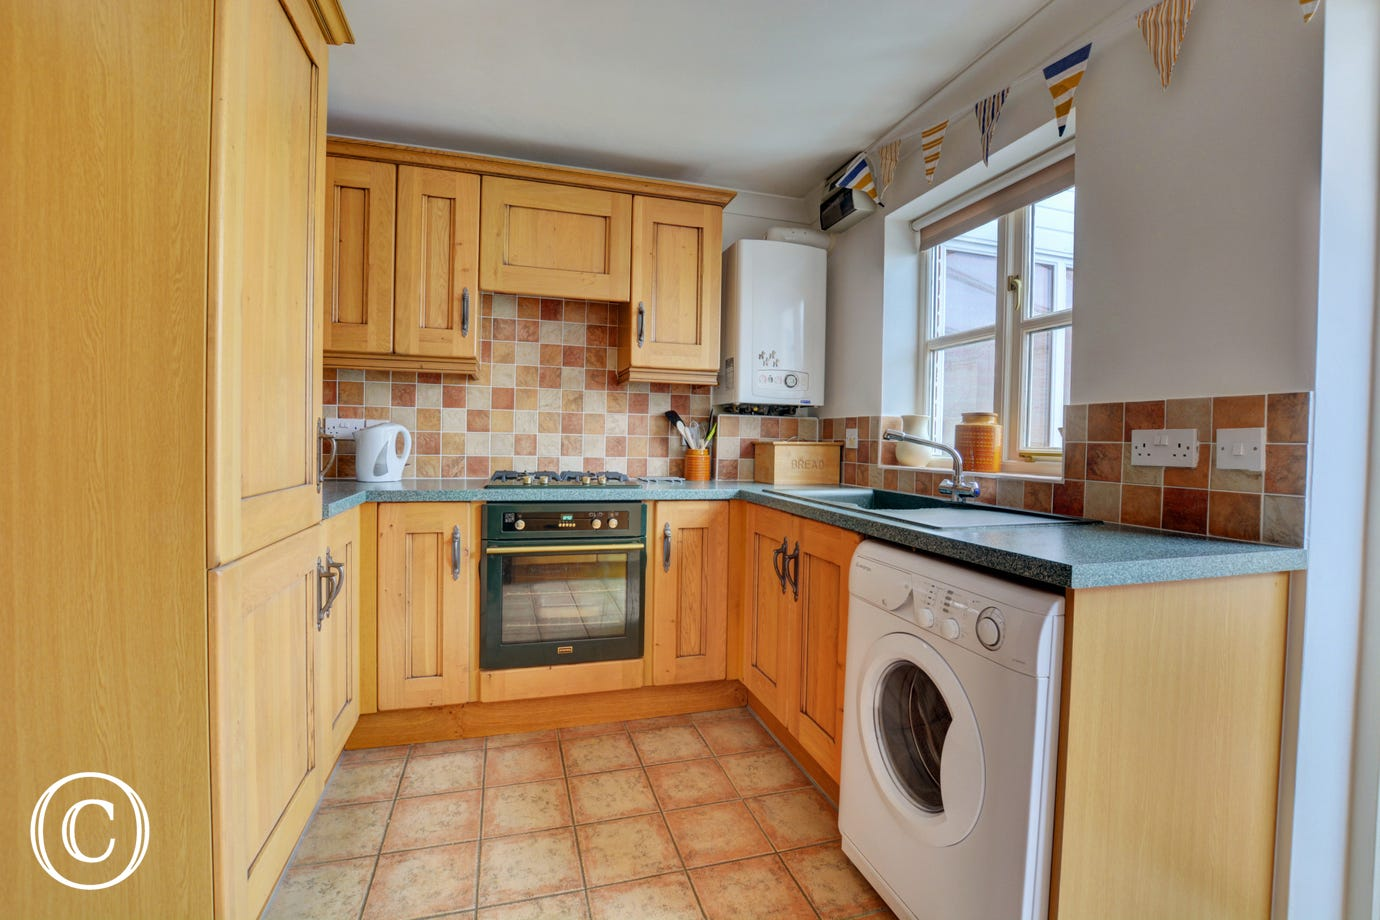 Kitchen with electric oven, gas hob, microwave, fridge/freezer and washer/dryer